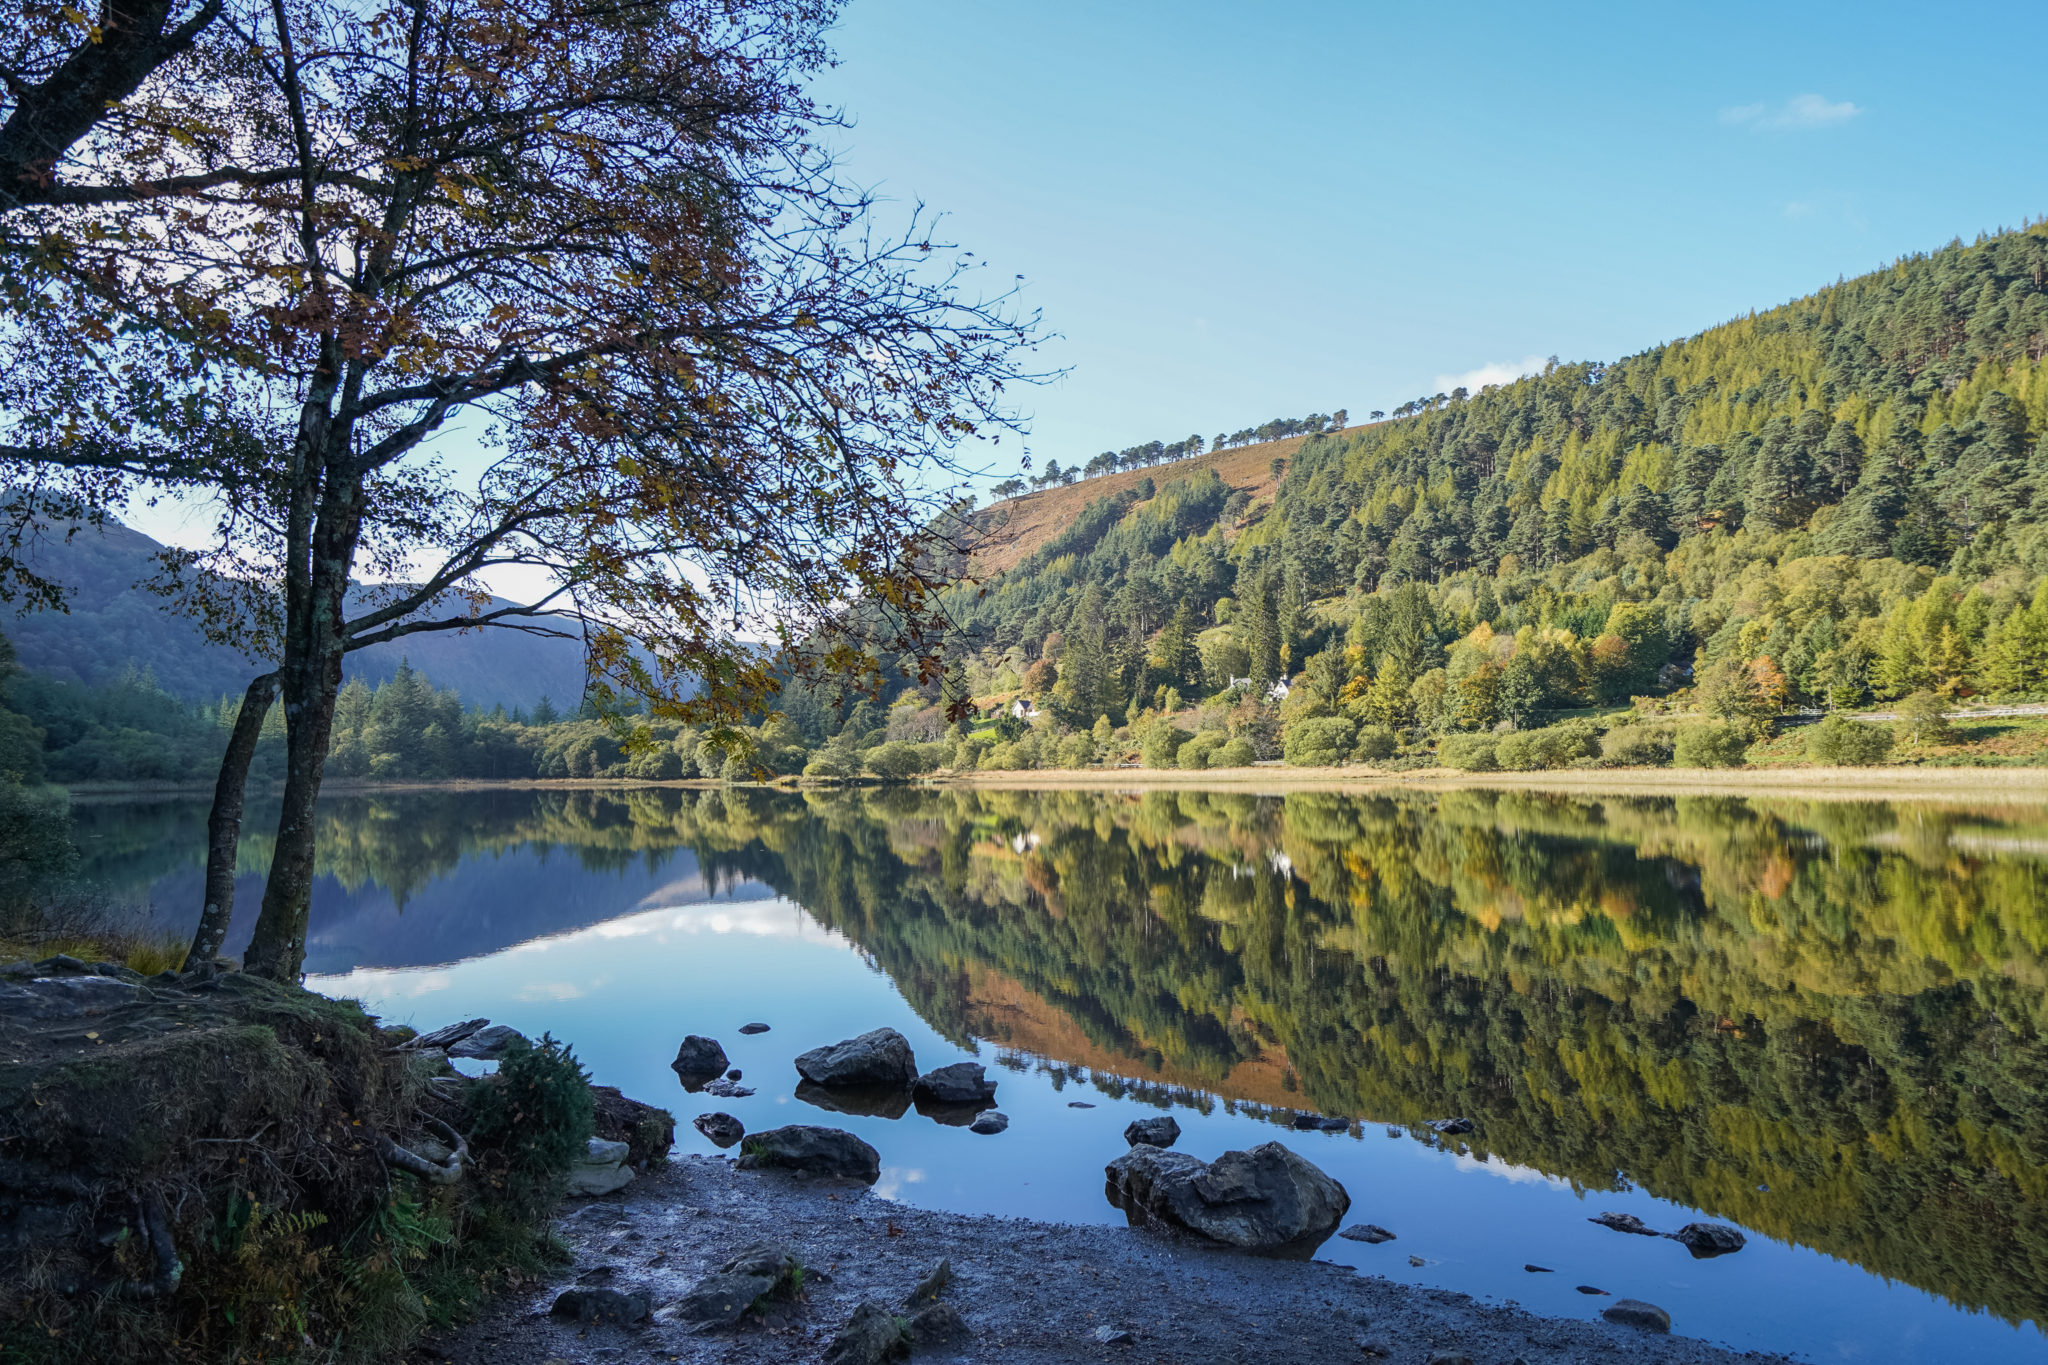 wicklow mountains-irlande-parc-dublin-outdoor-voyage